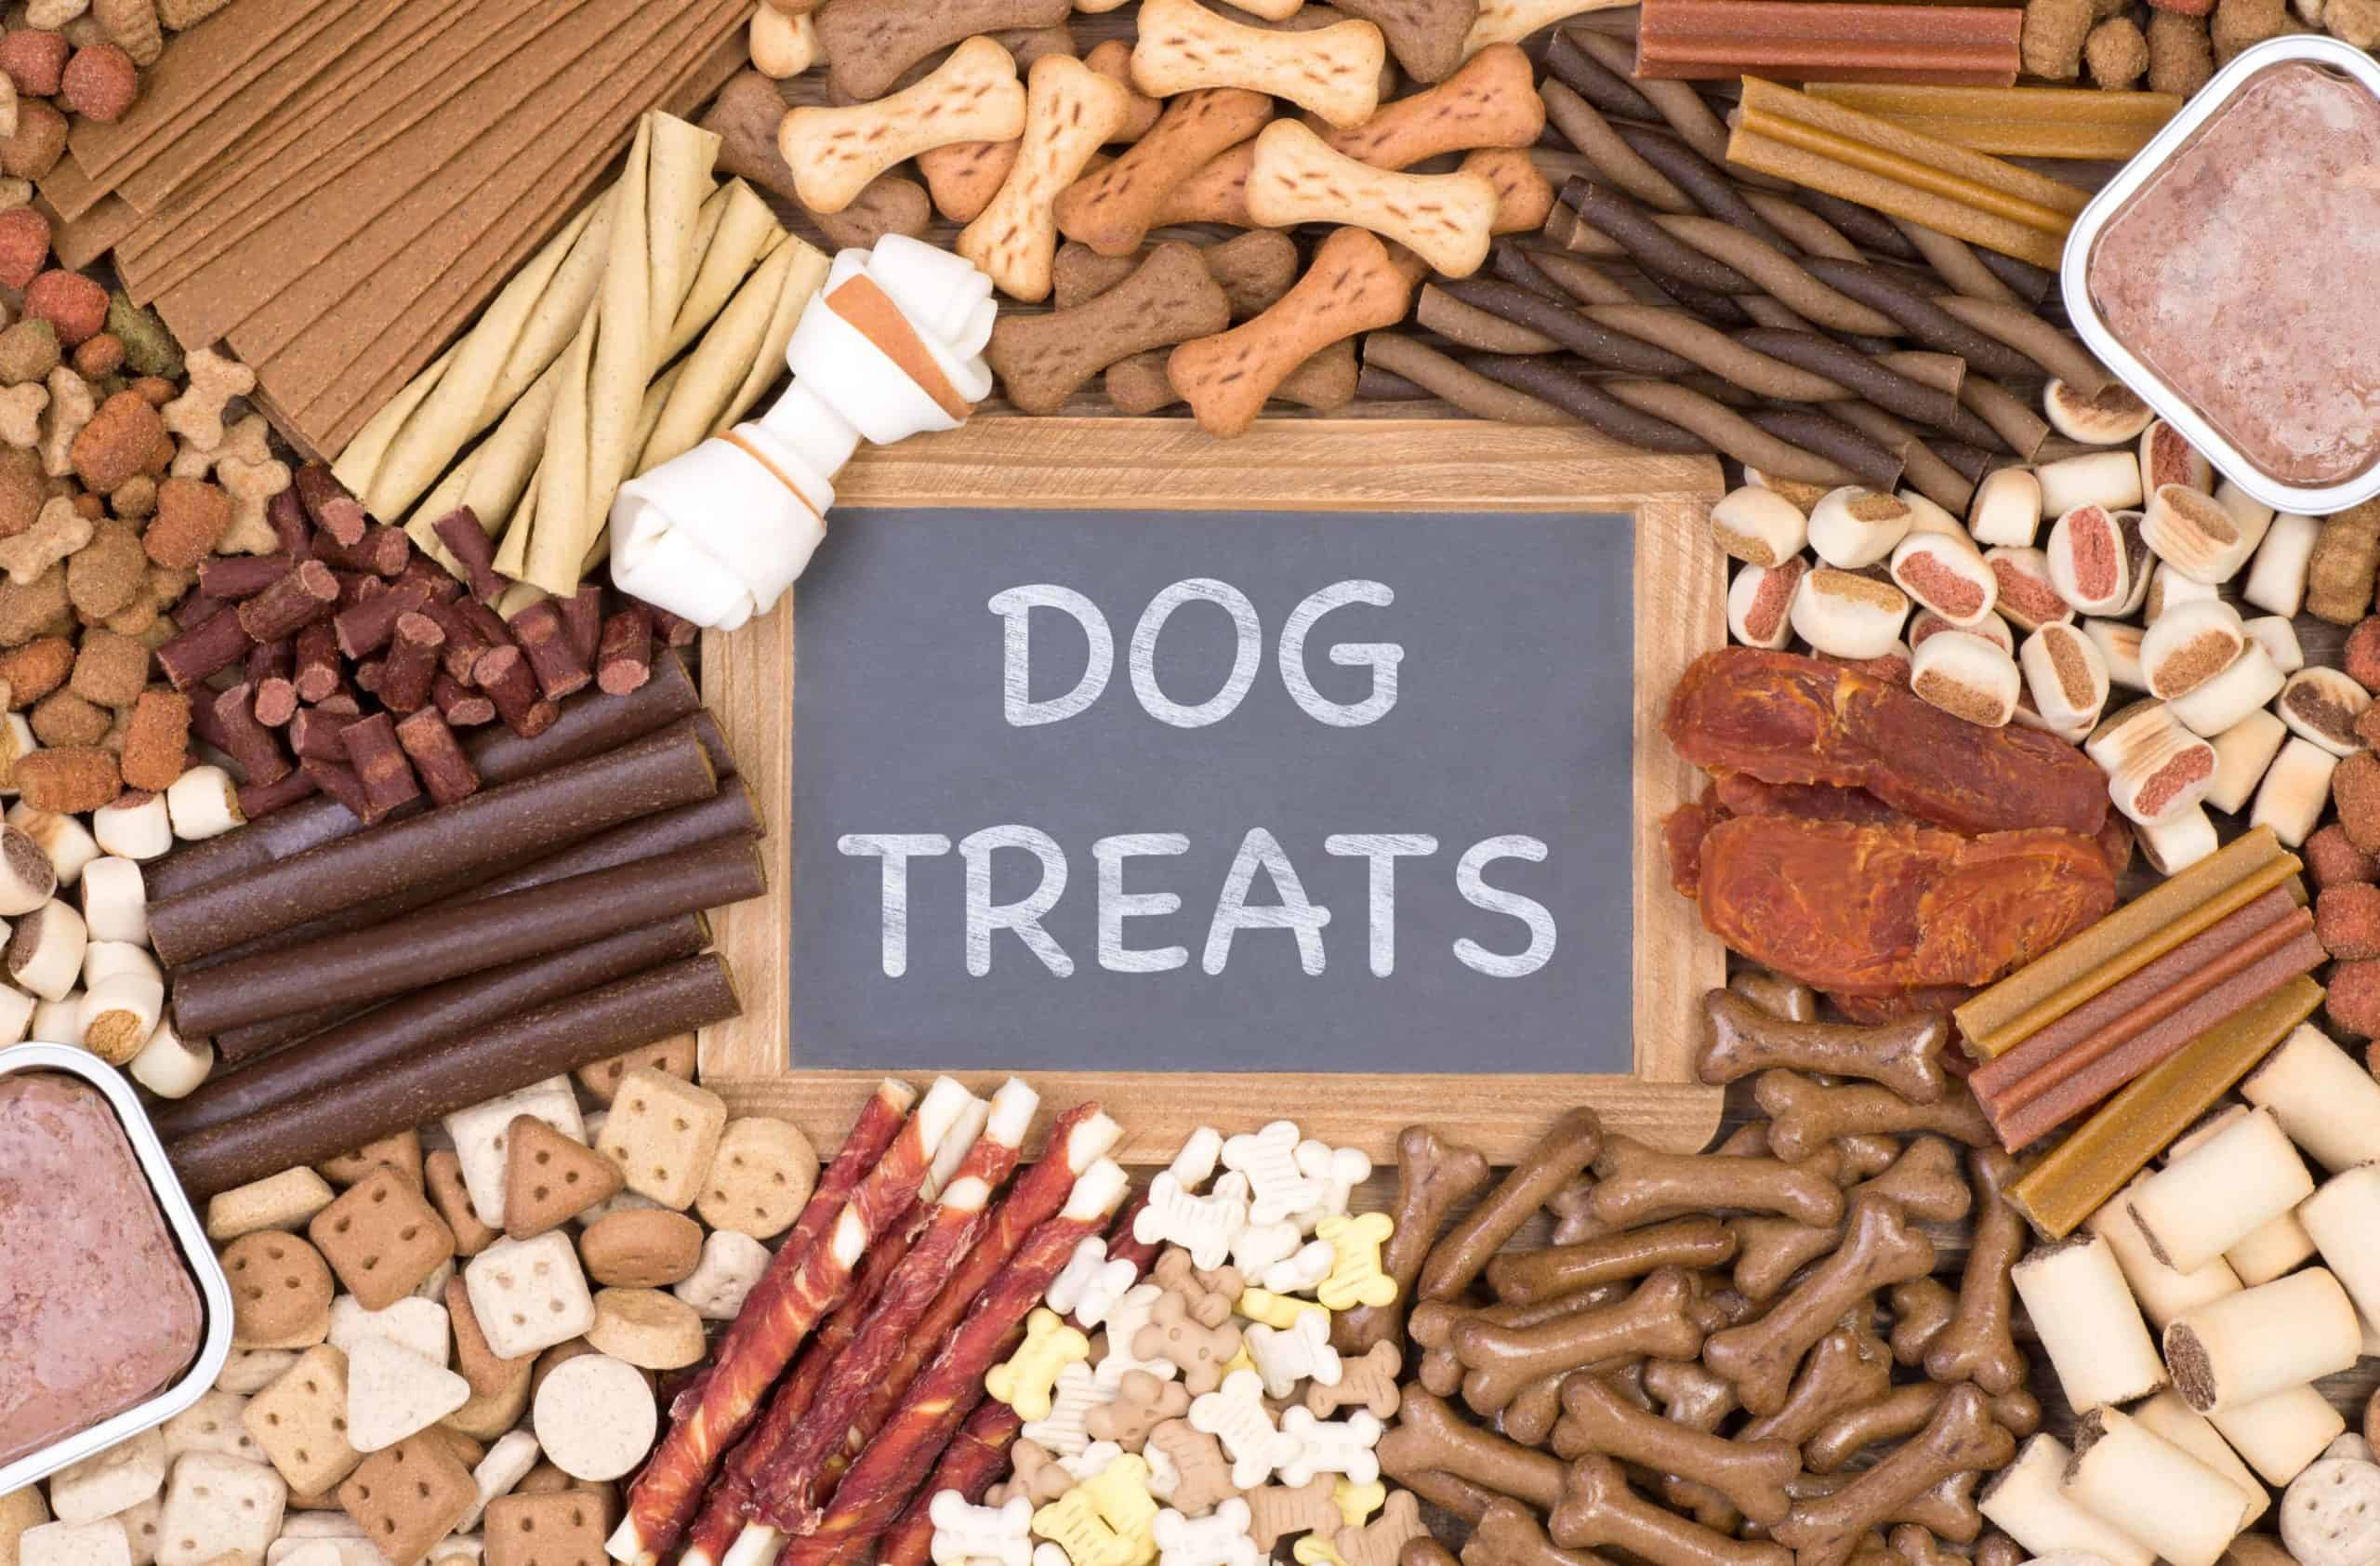 Dog treats are an important part of your dog's diet, so it is vital that you include treats in your calorie calculation for the day.